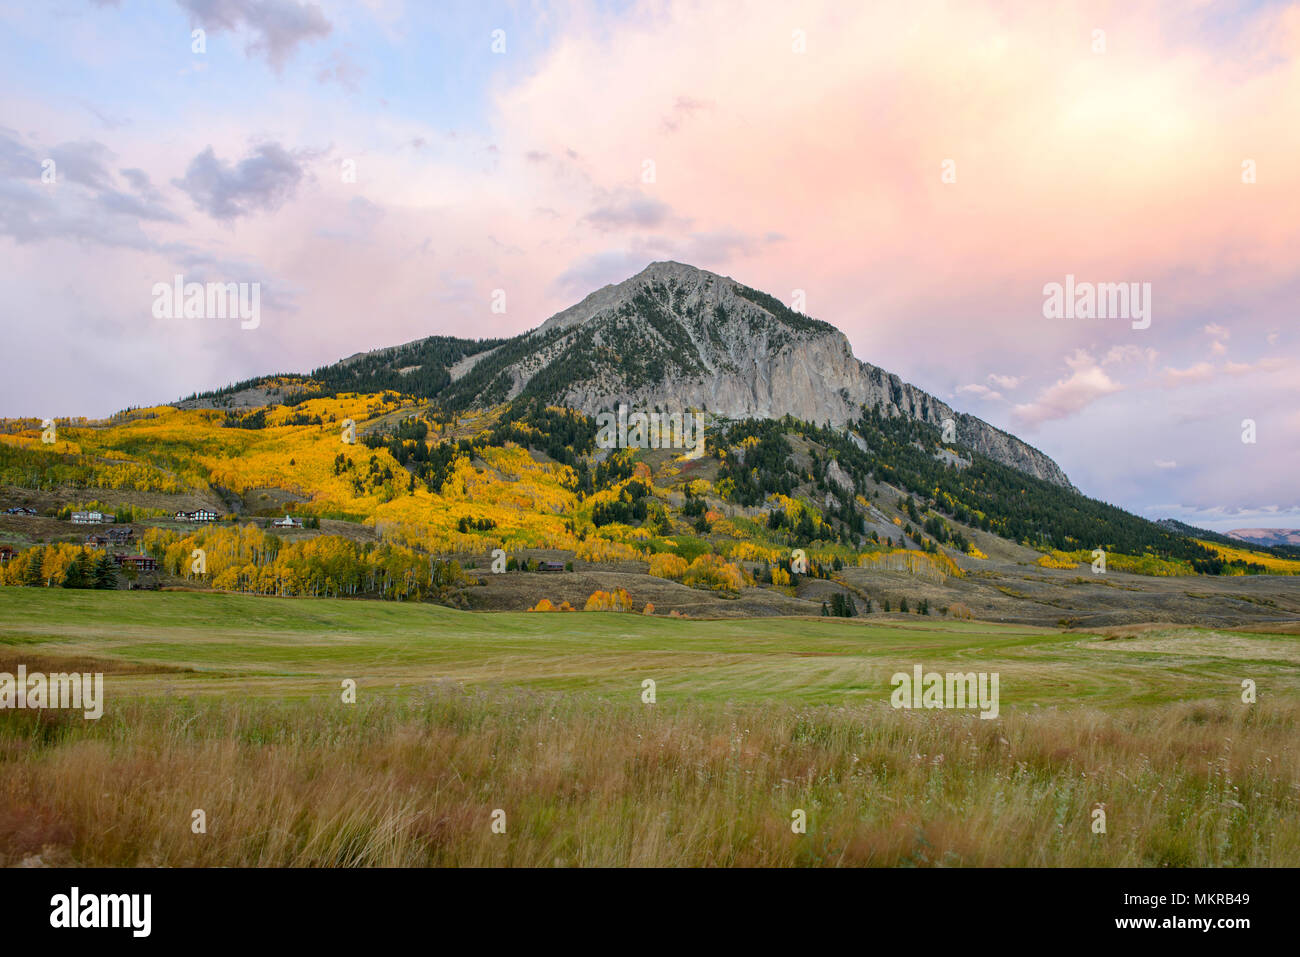 Sunset Crested Butte - Autumn Sunset view at Mount Crested Butte, Crested Butte, Colorado, USA. - Stock Image